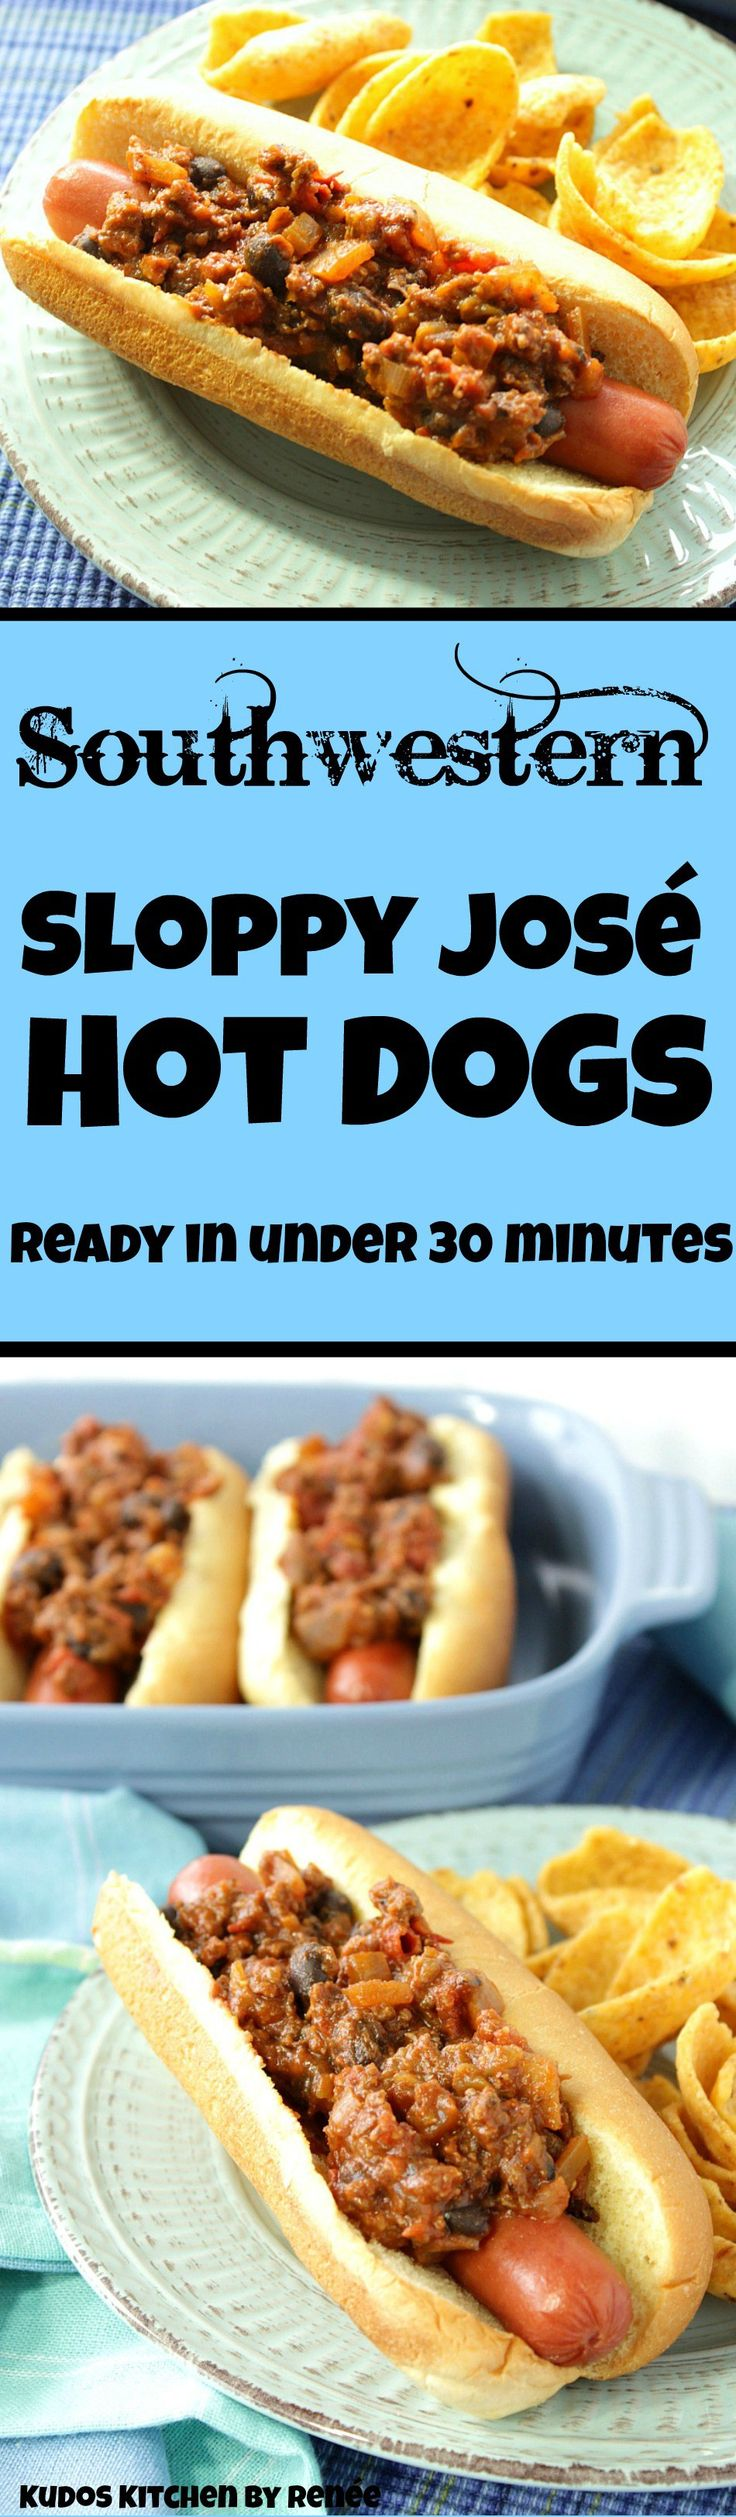 166 best Hot Dogs images on Pinterest | Hot dogs, Hamburgers and Recipes